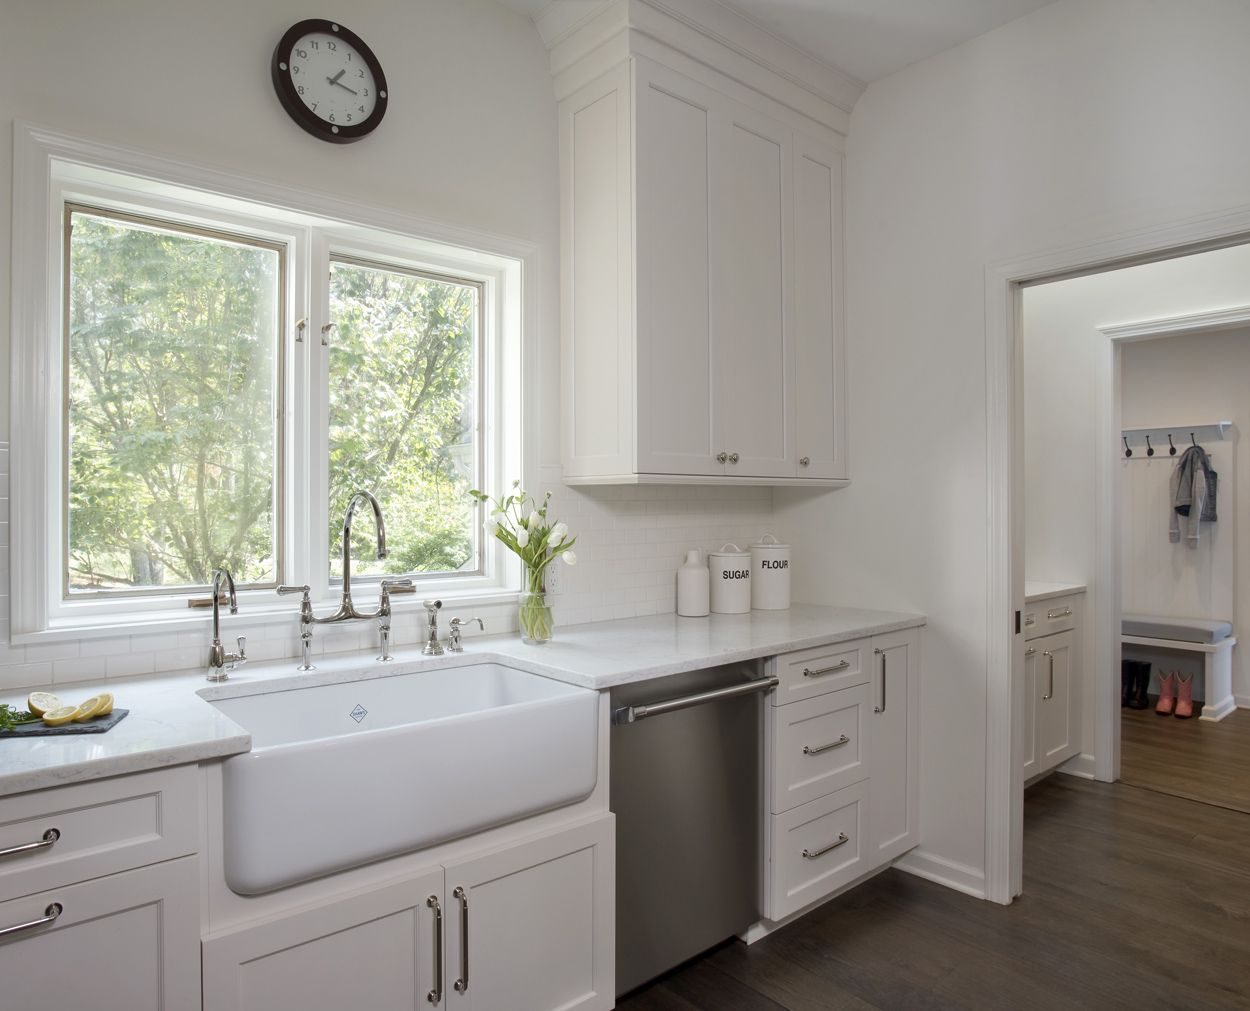 Rohl farm sink with a glimpse into the adjacent mudroom.